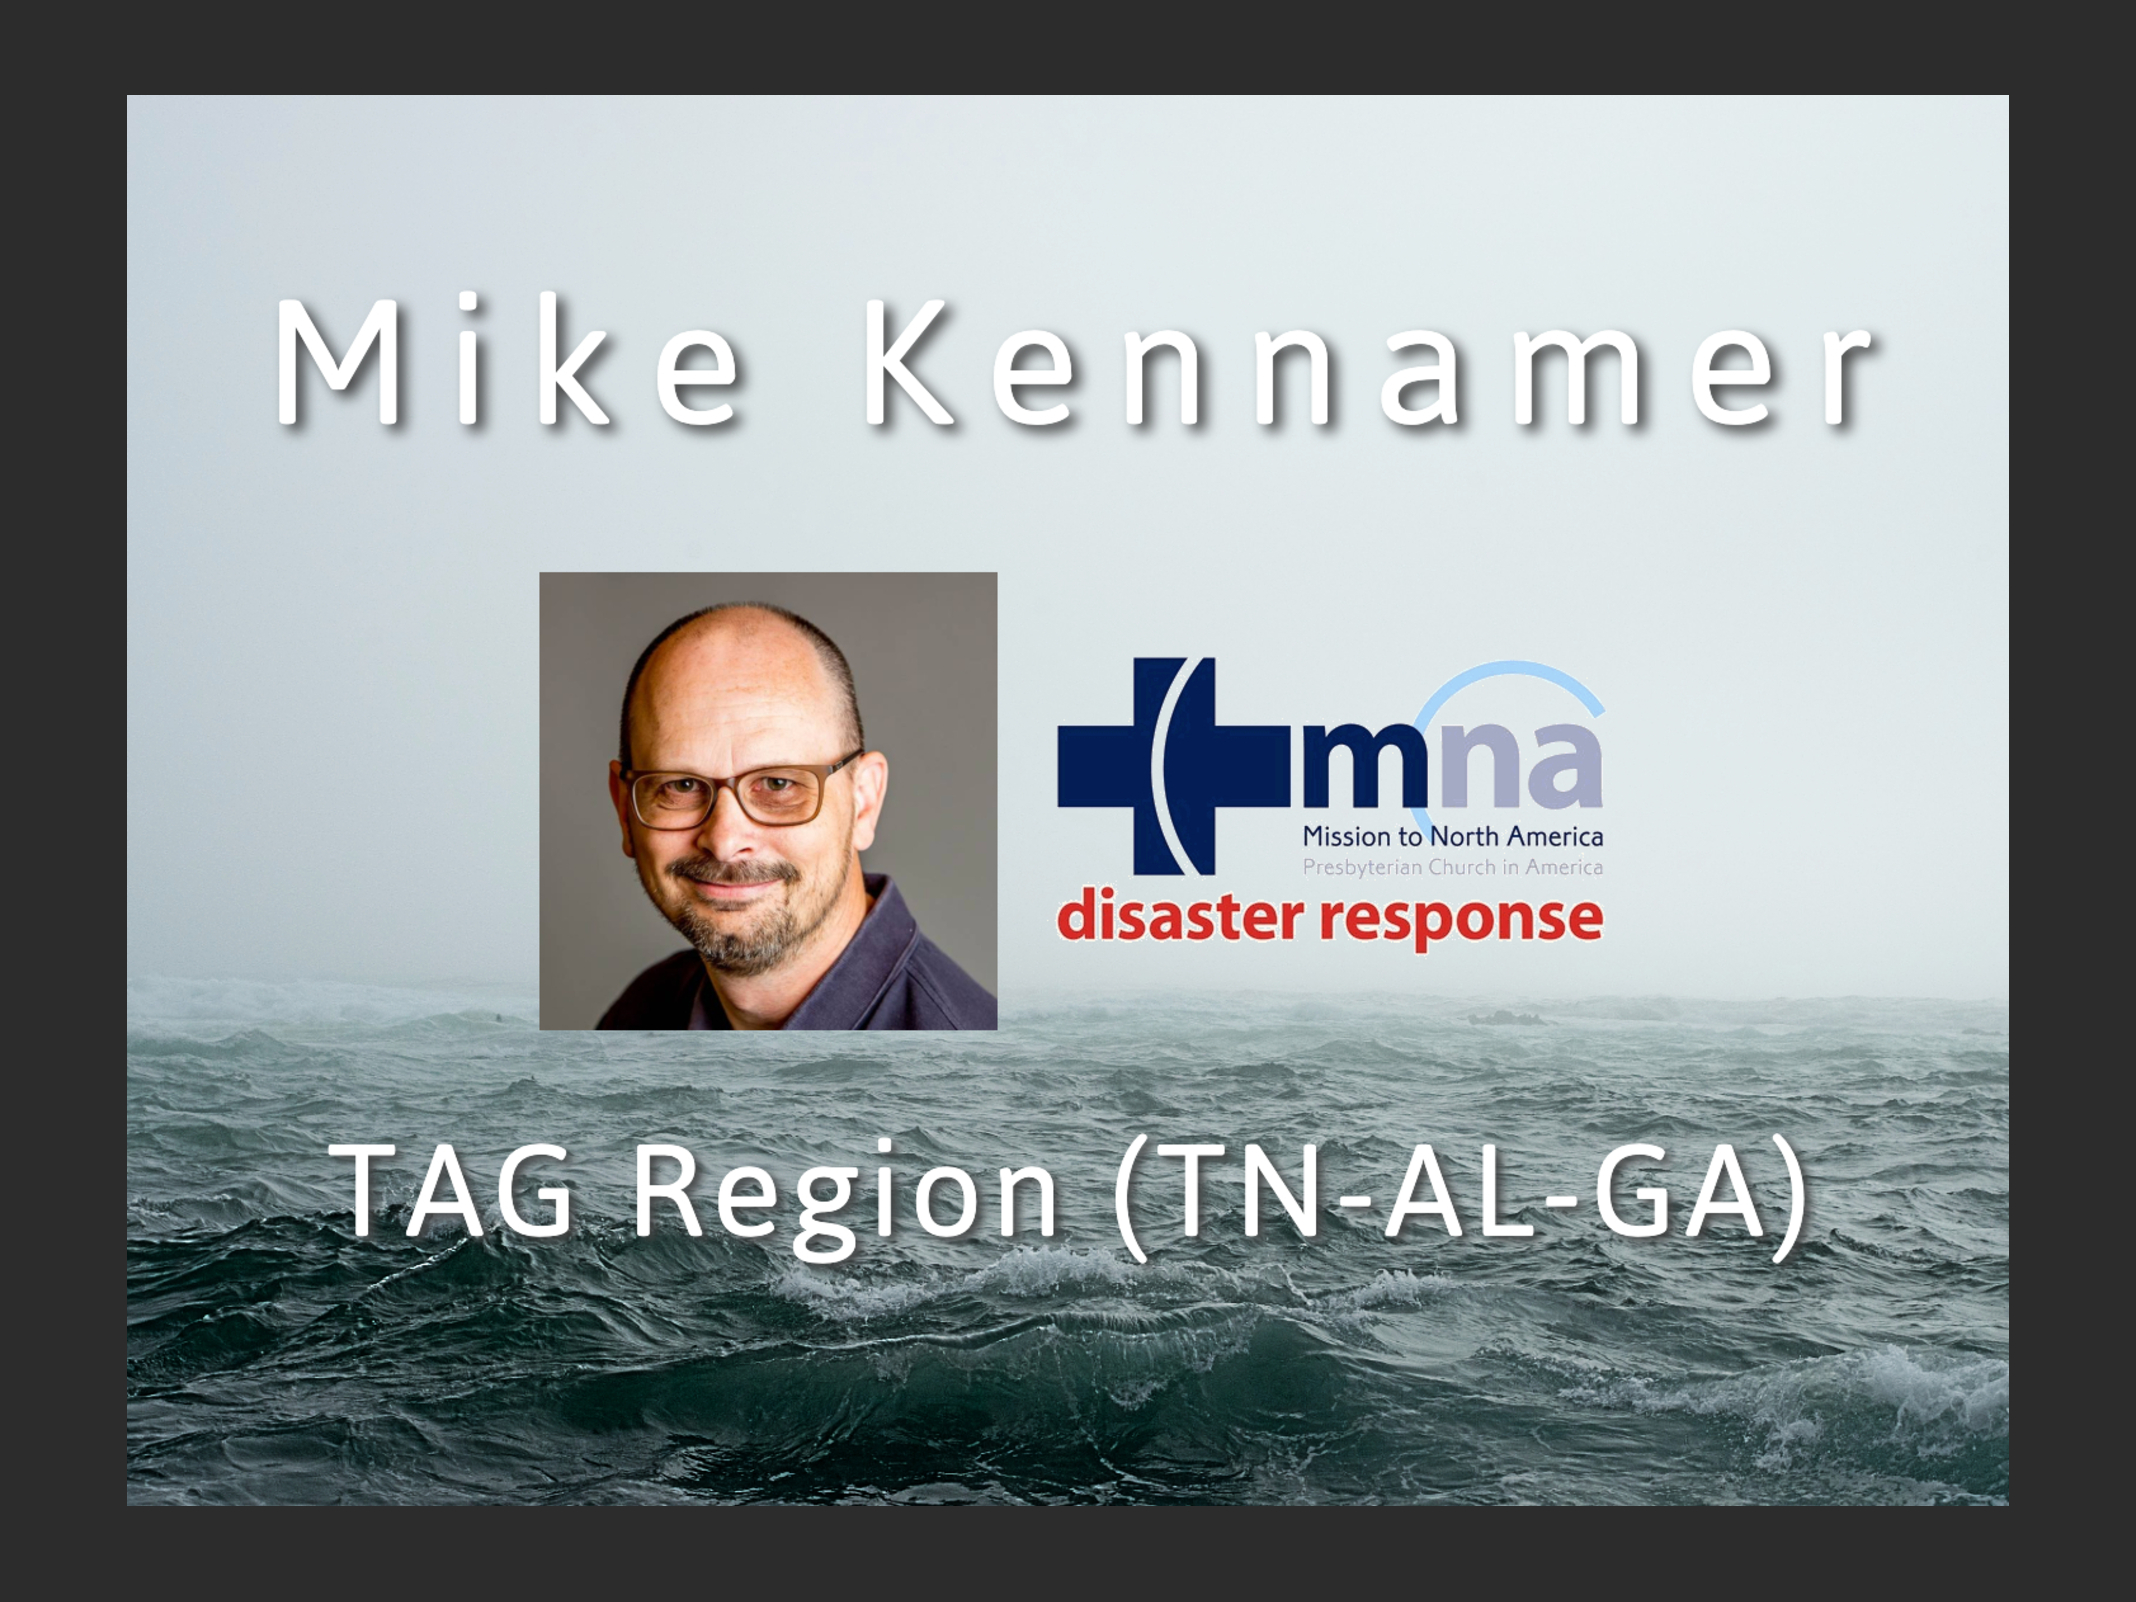 Mike Kennamer Missionary